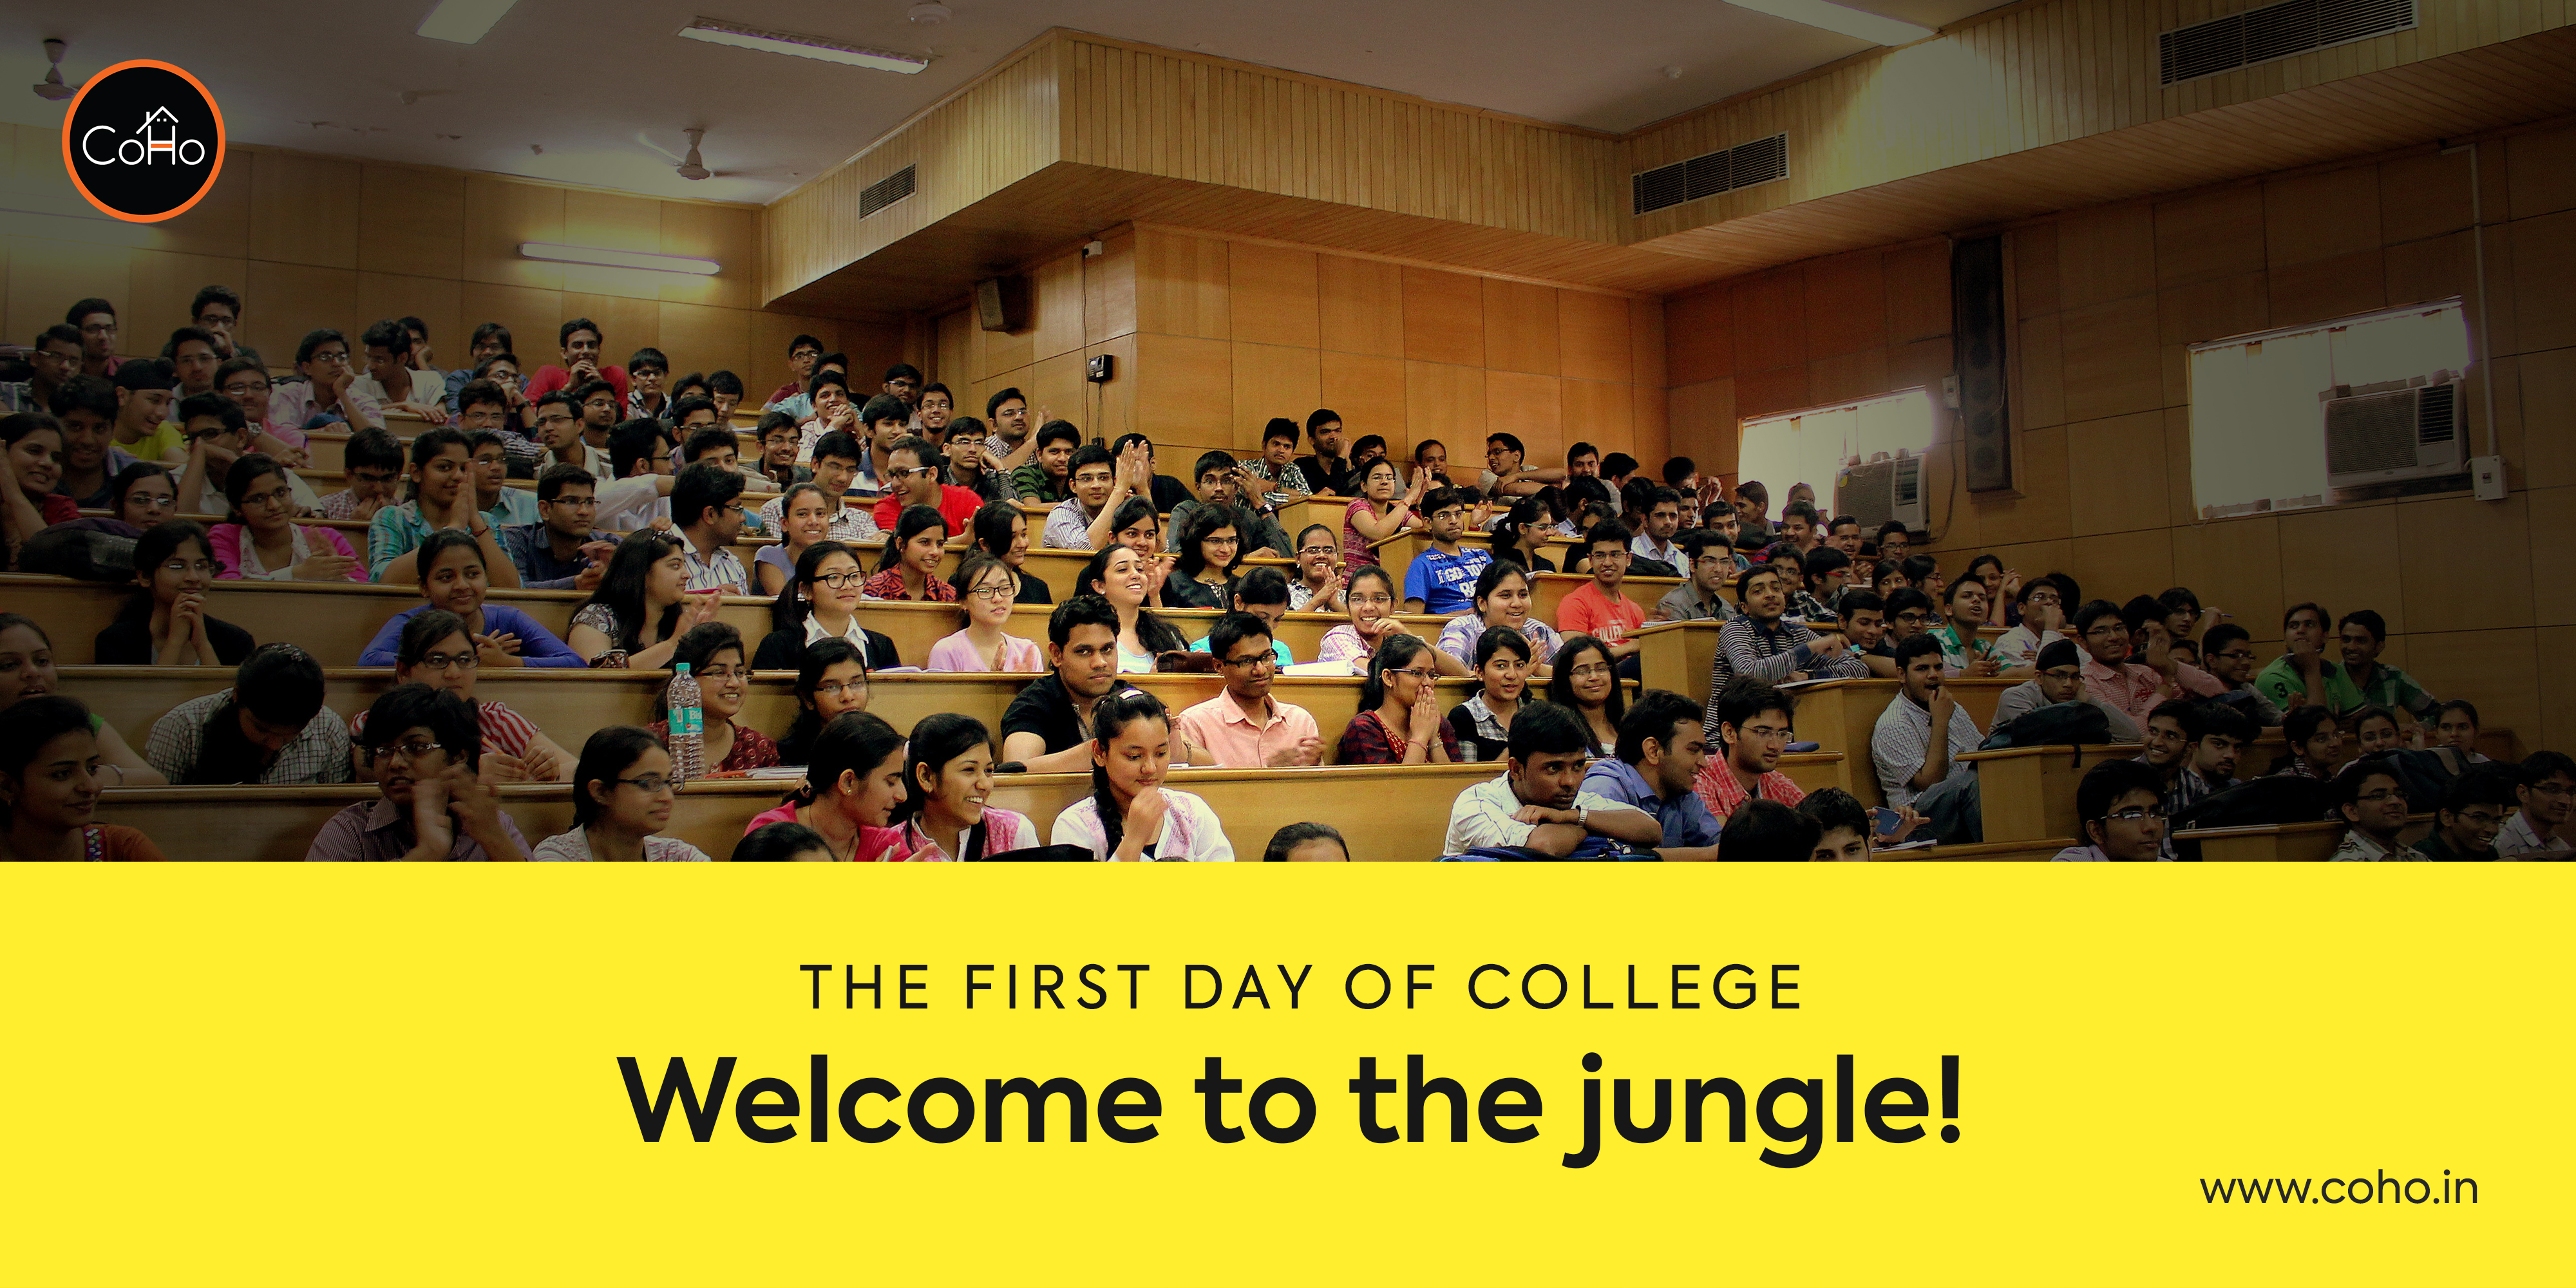 The First Day of College - Welcome to the jungle!